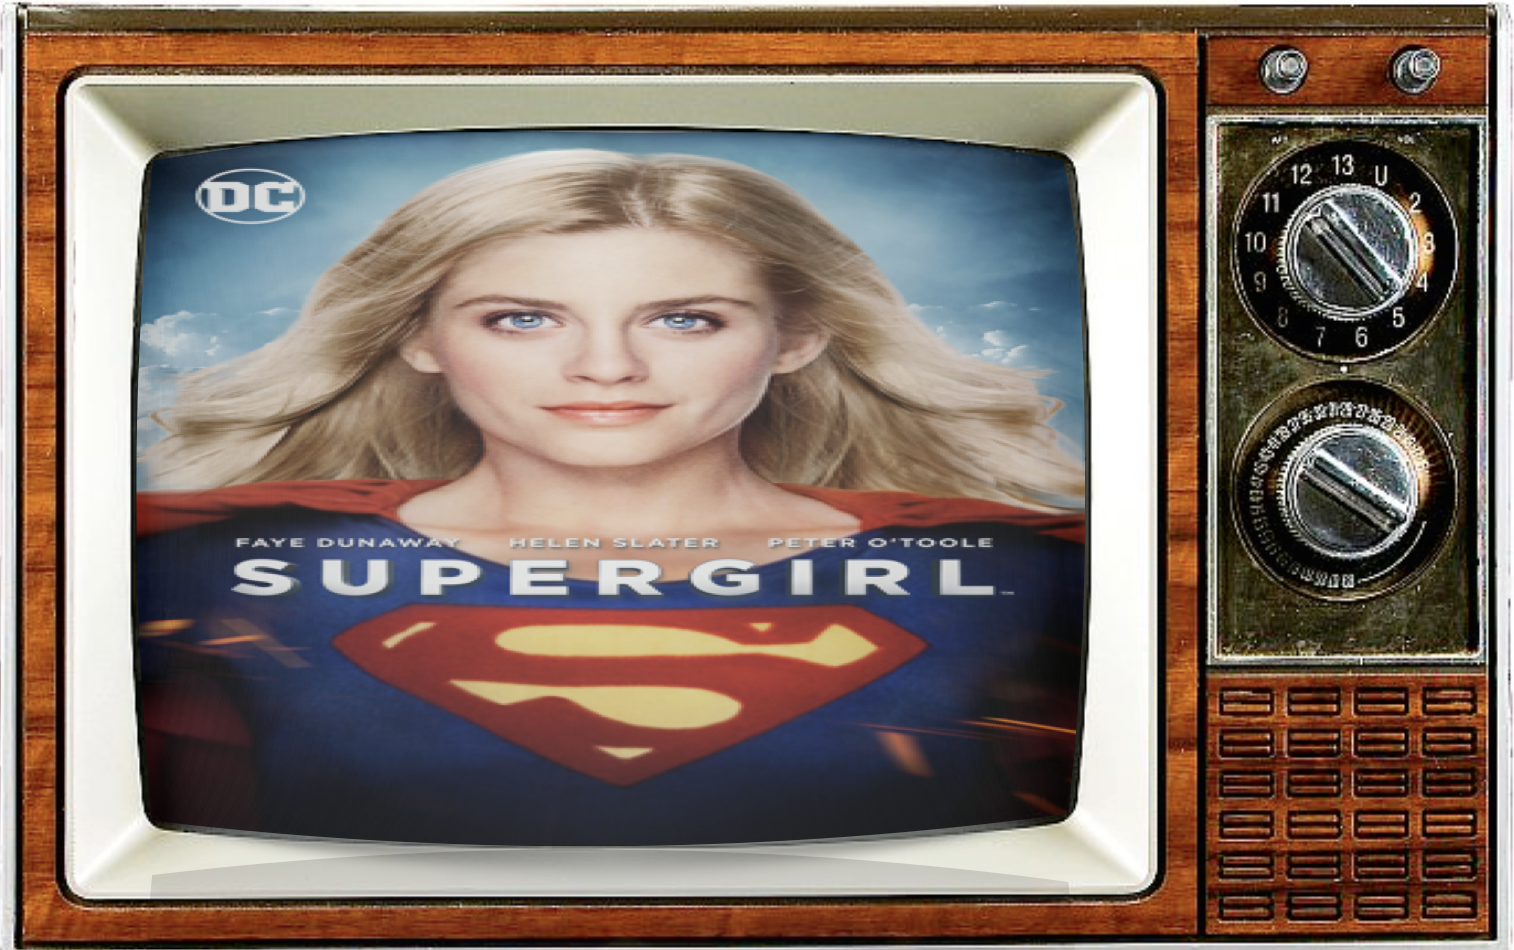 SMC Episode 78: Supergirl VS The Glass Ceiling – The Overdue Female Superheros W/ Helen Slater